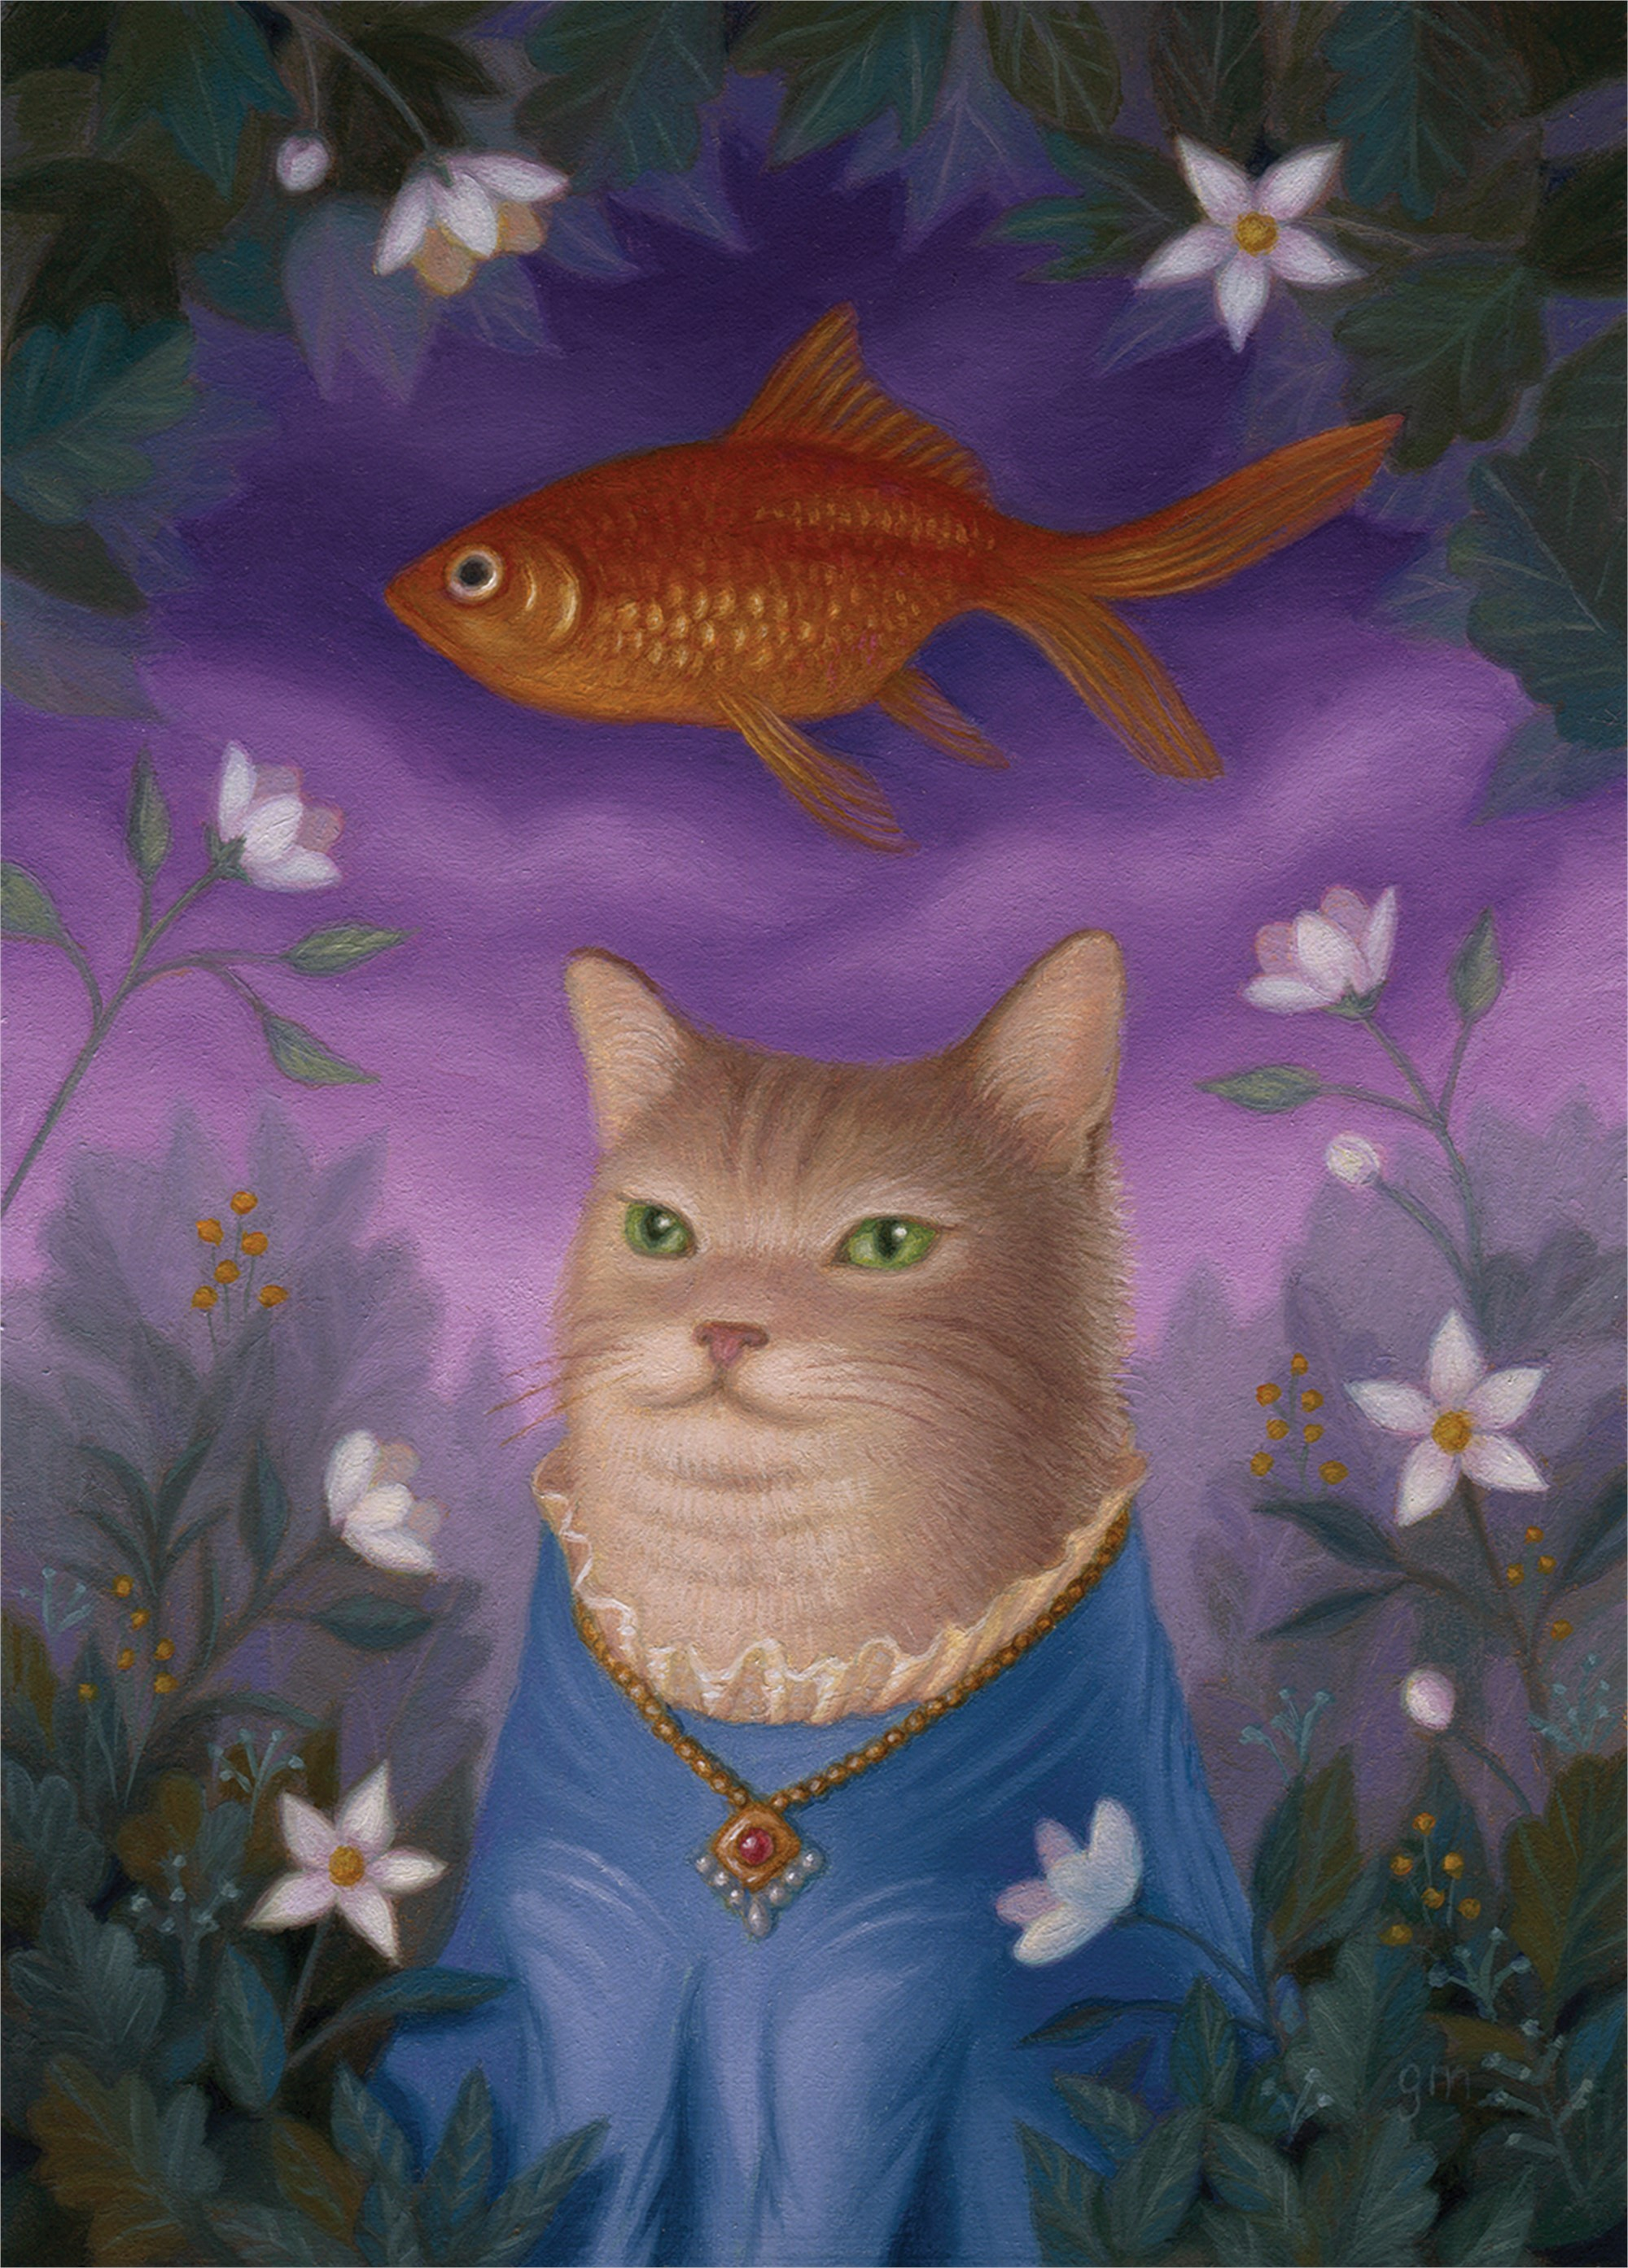 Amelia, Amongst the Flowers in the Fish Glen by Gina Matarazzo